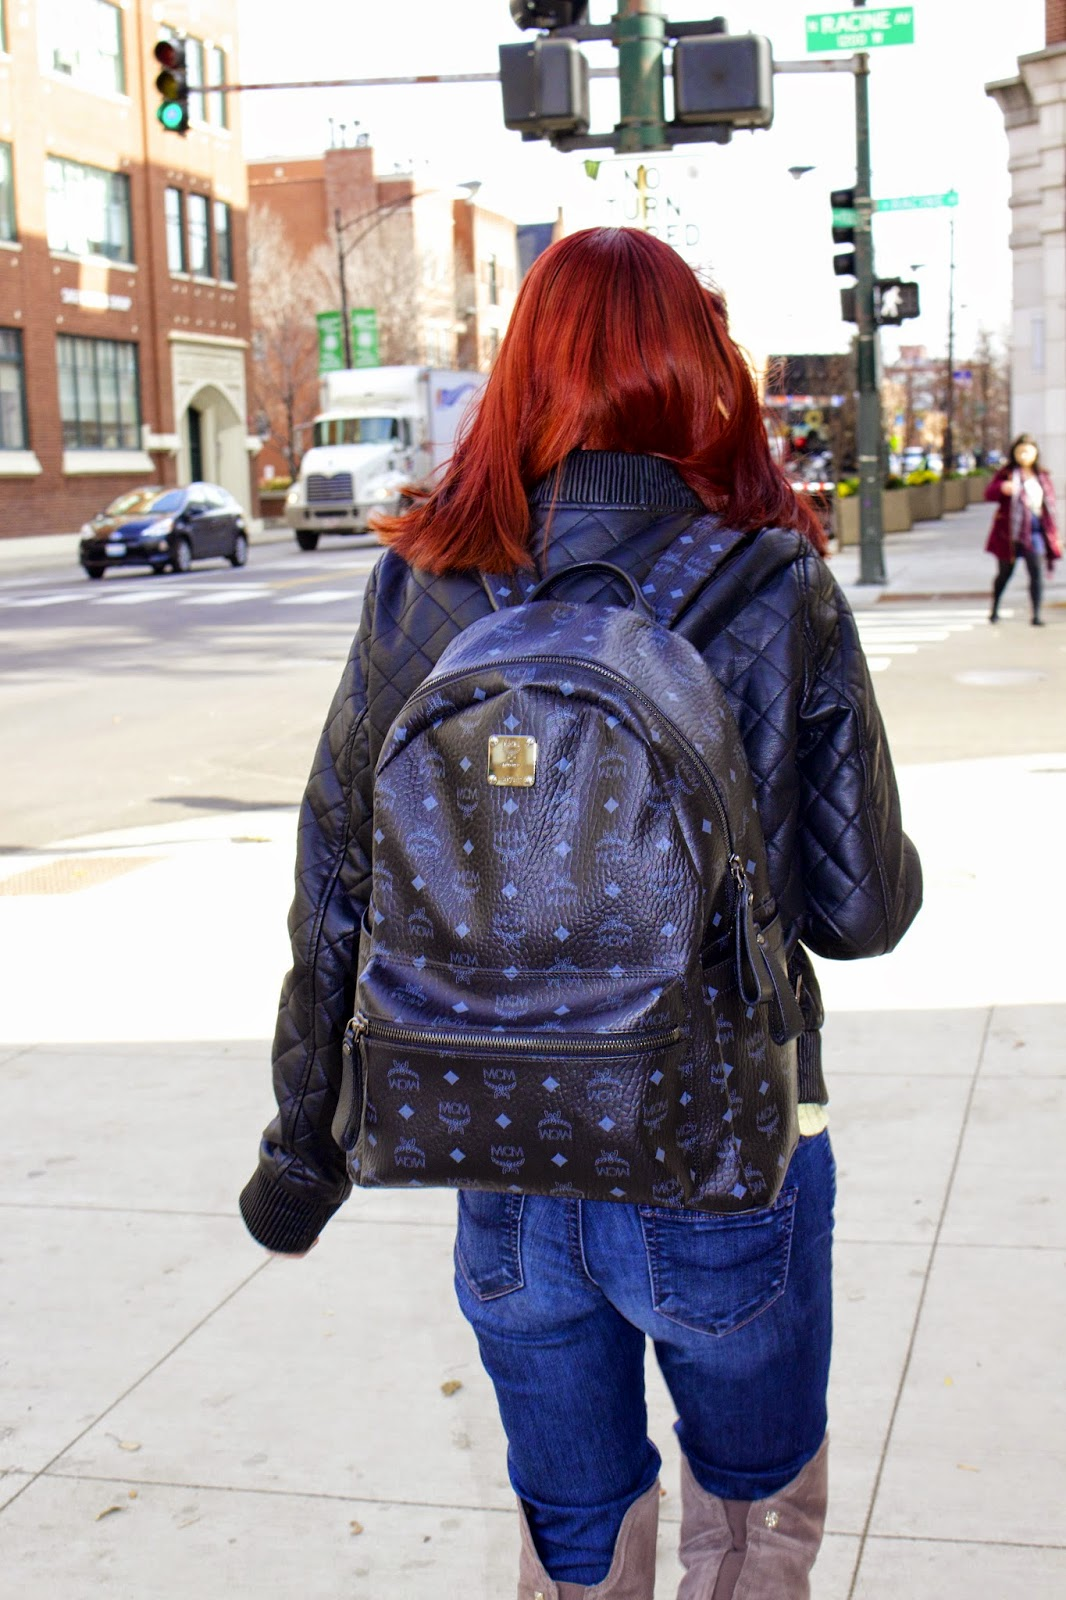 mcm backpack, Fashion Faves, paige jeans, over the knee boots, vince camuto baldwin, topshop cat shirt, quilted leather jacket, hicustom